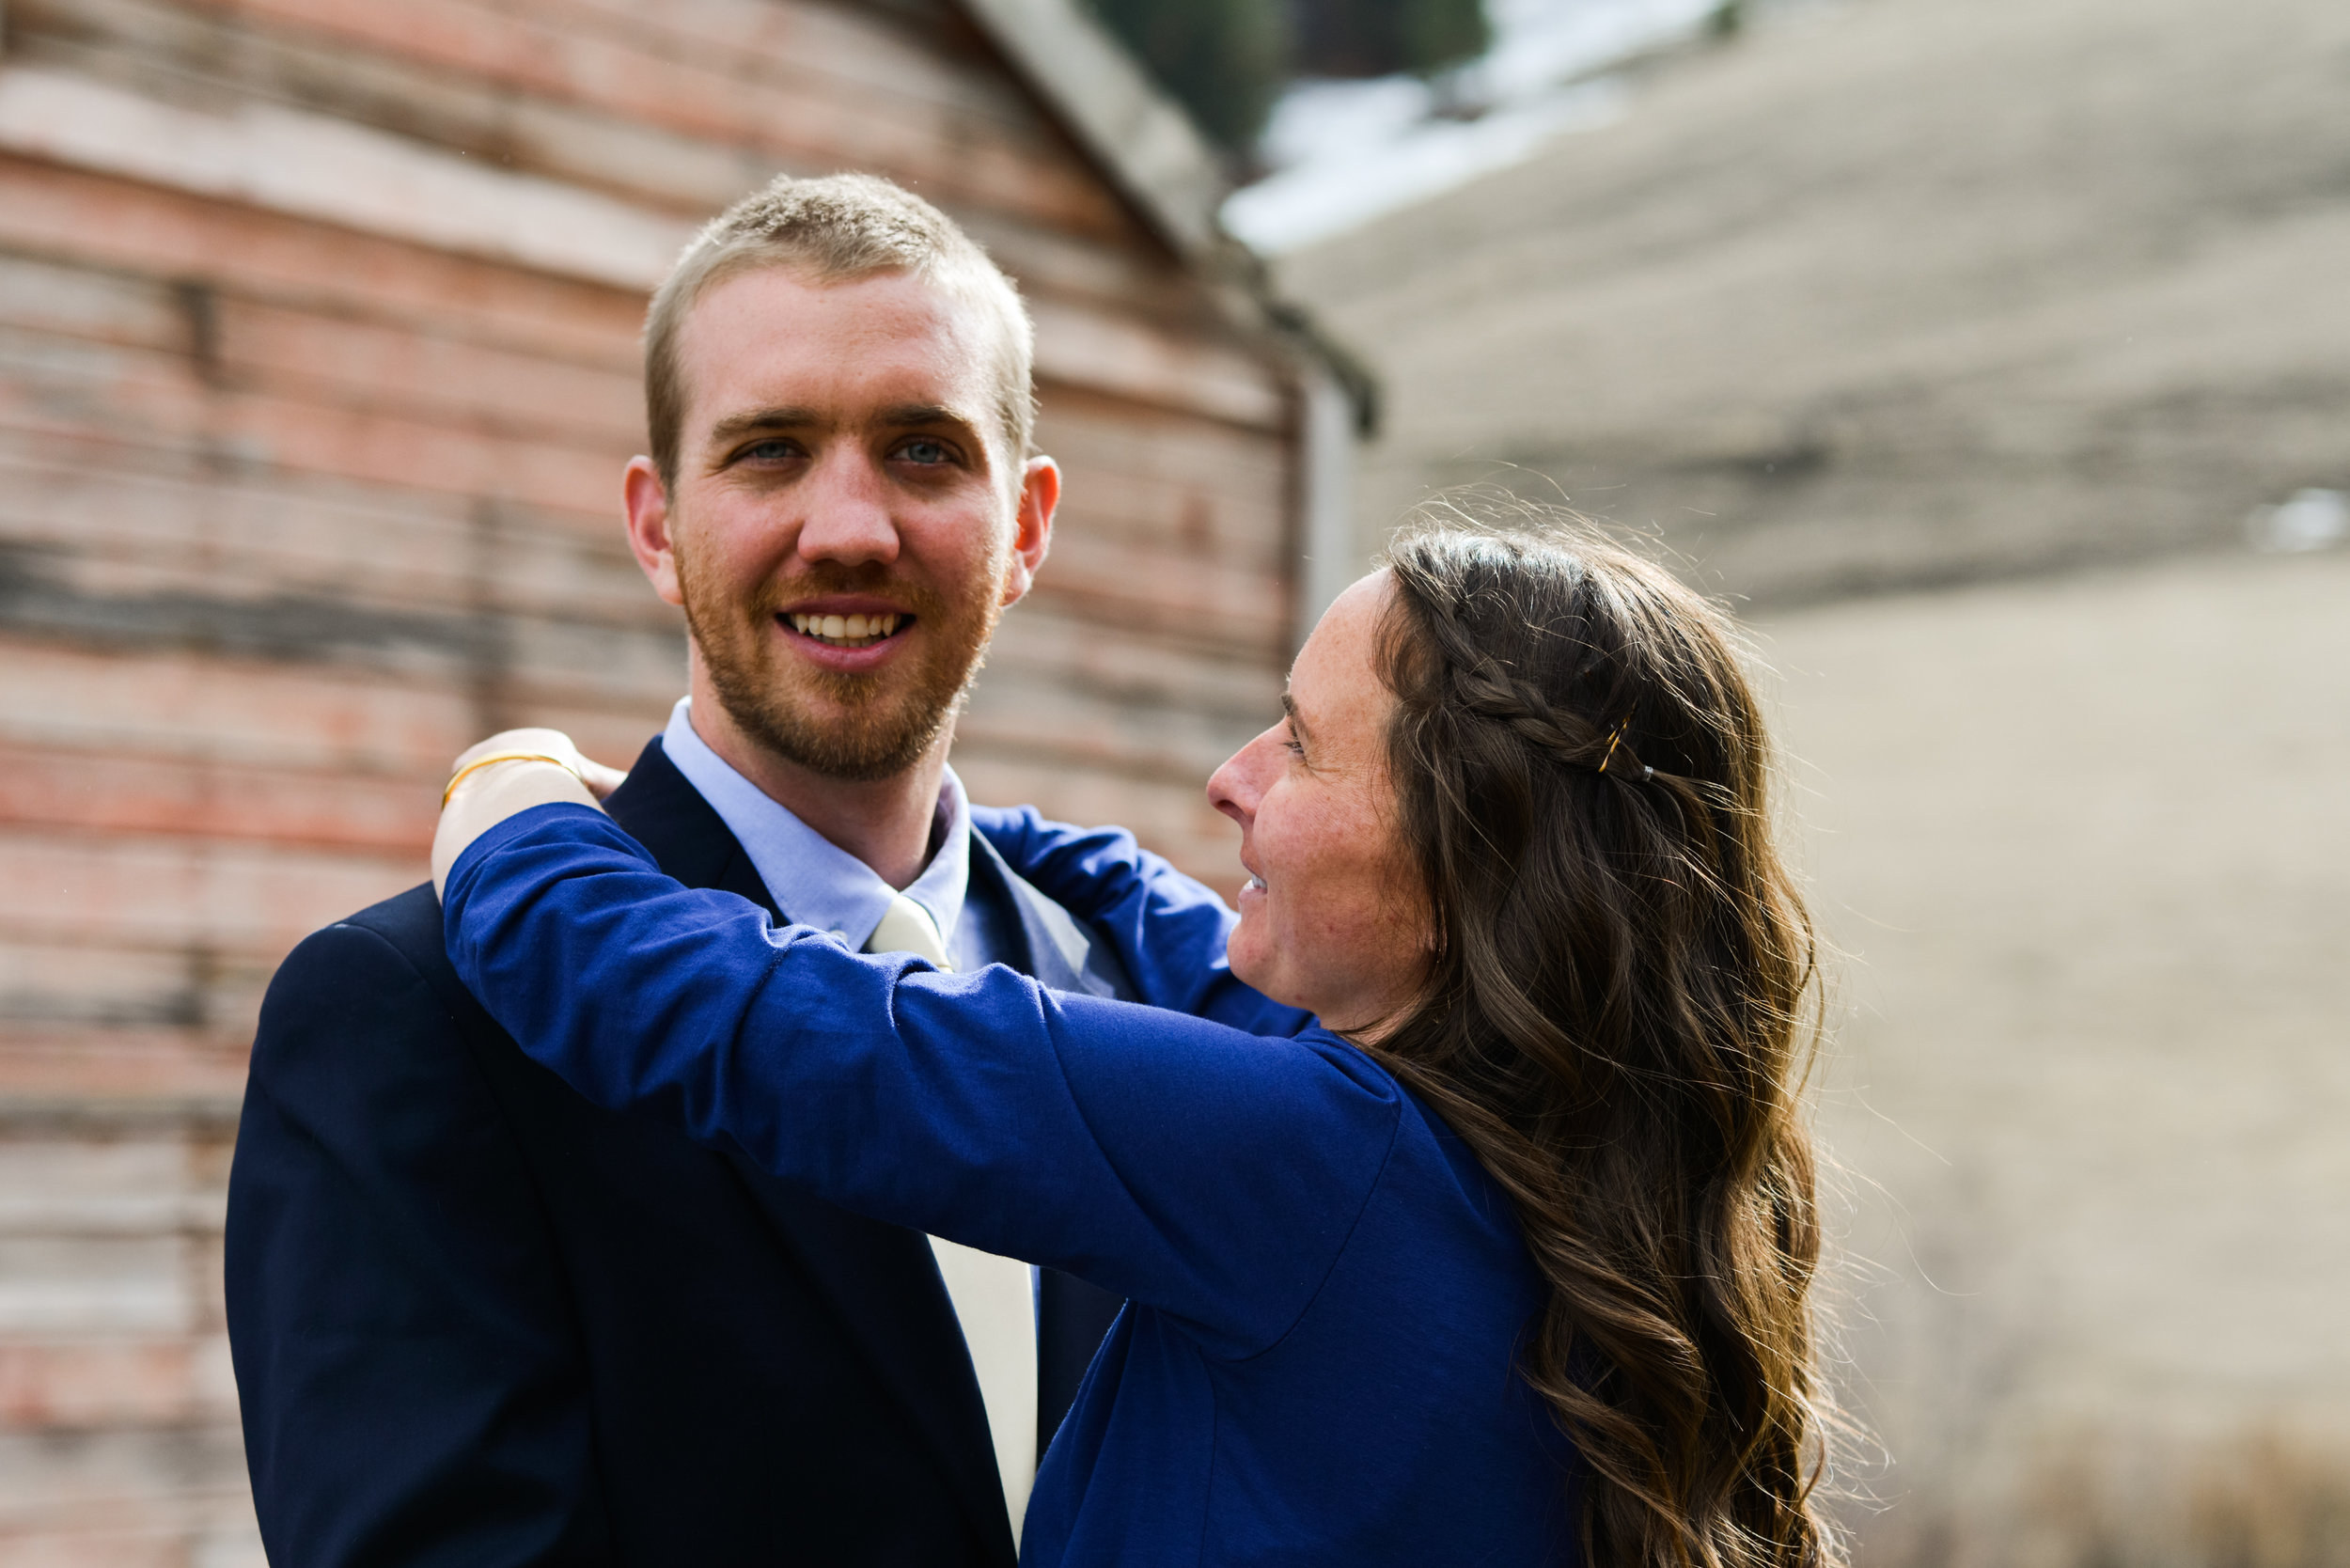 Ryan Melanie Elopement Enterprse Oregon Spring 2019 Please Credit Talia Jean Galvin (119 of 220).jpg